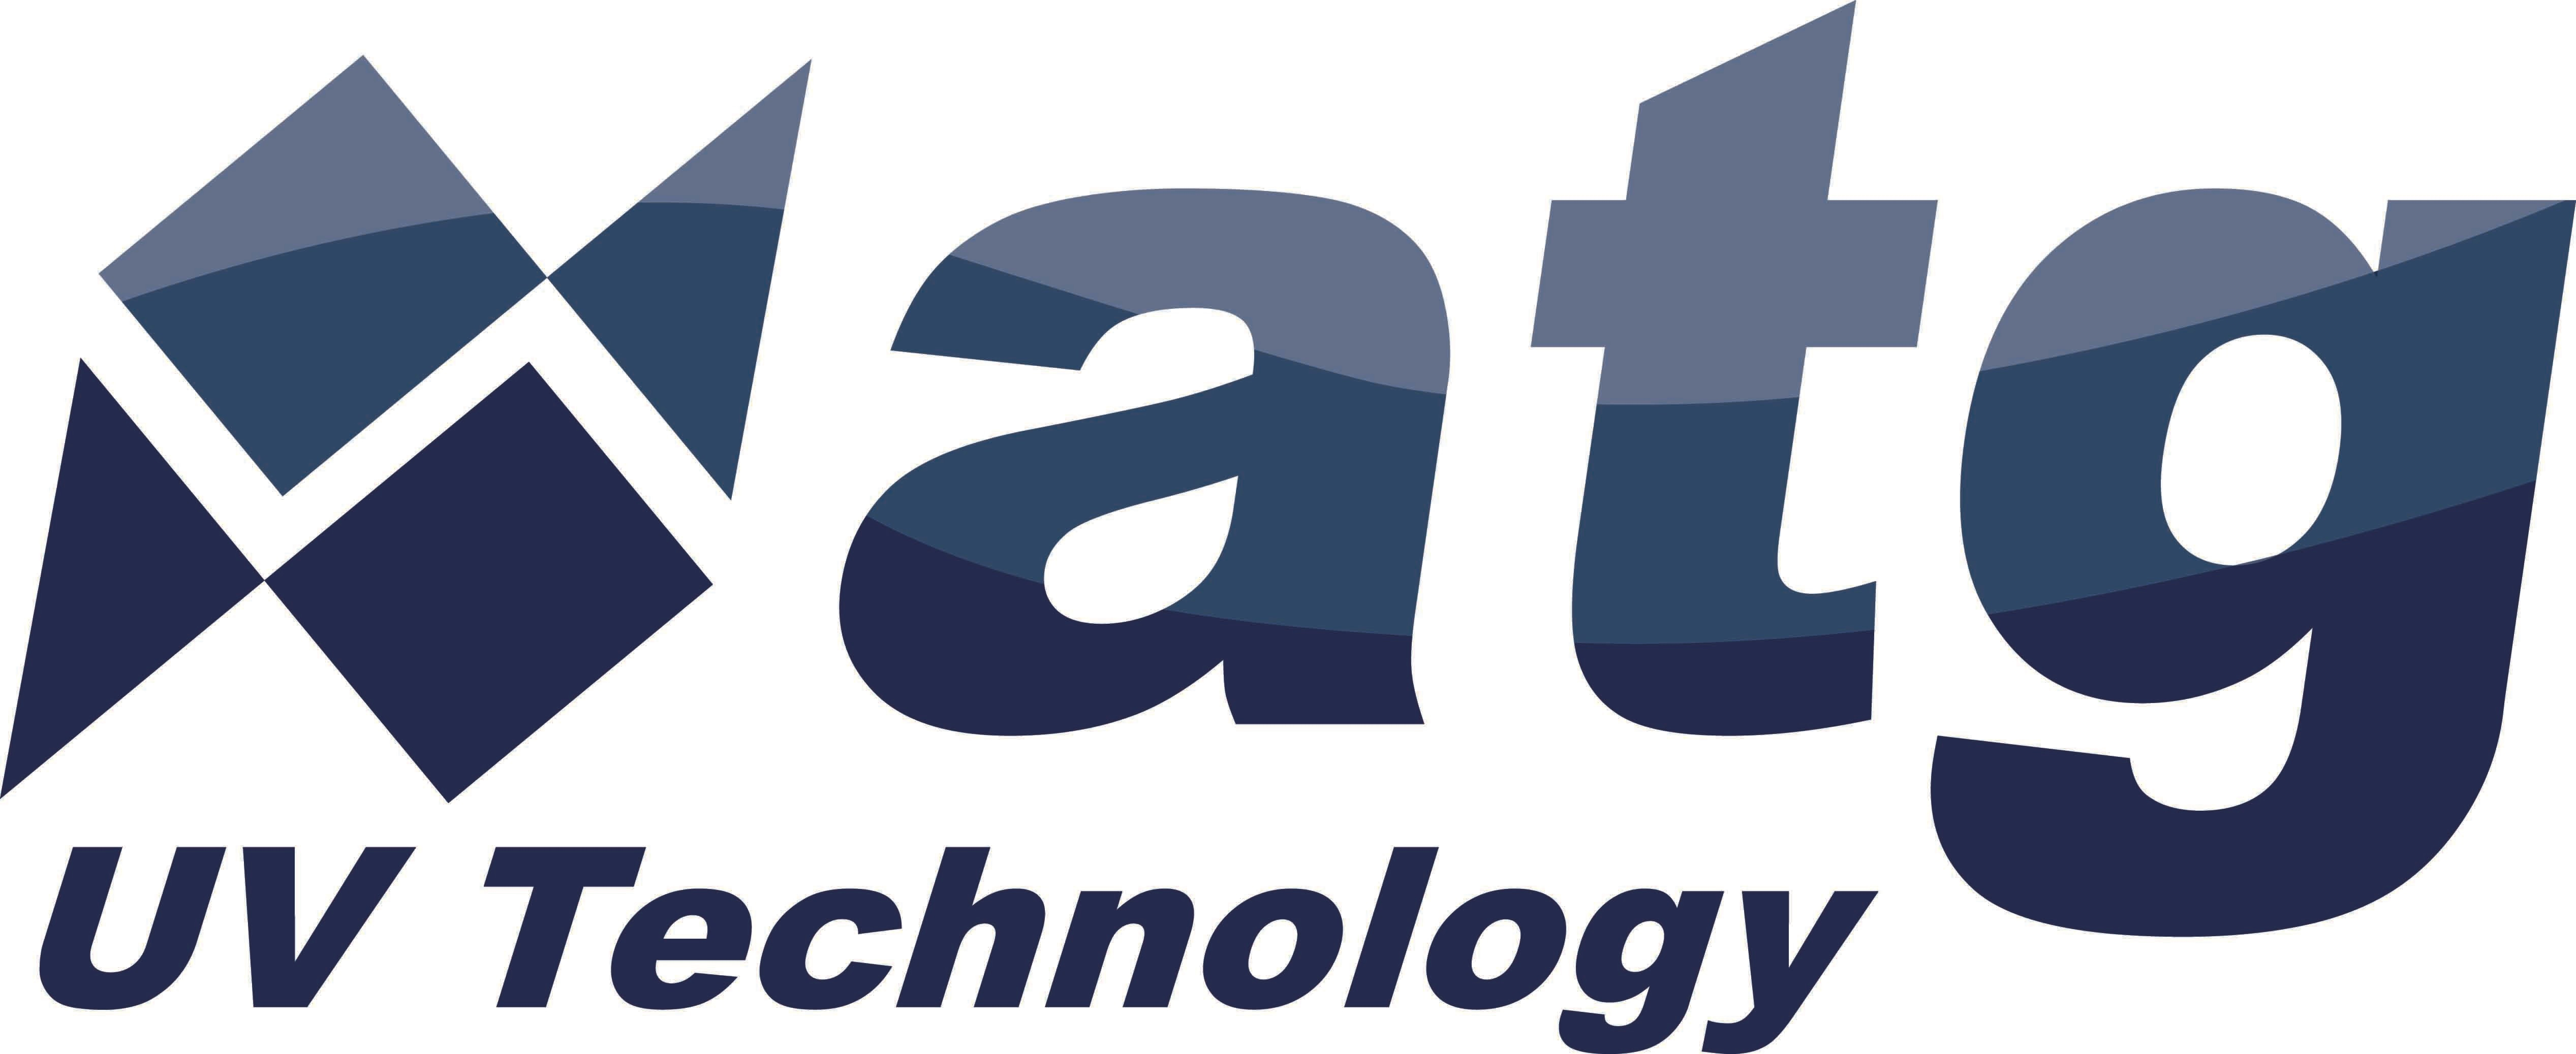 atg UV Technology